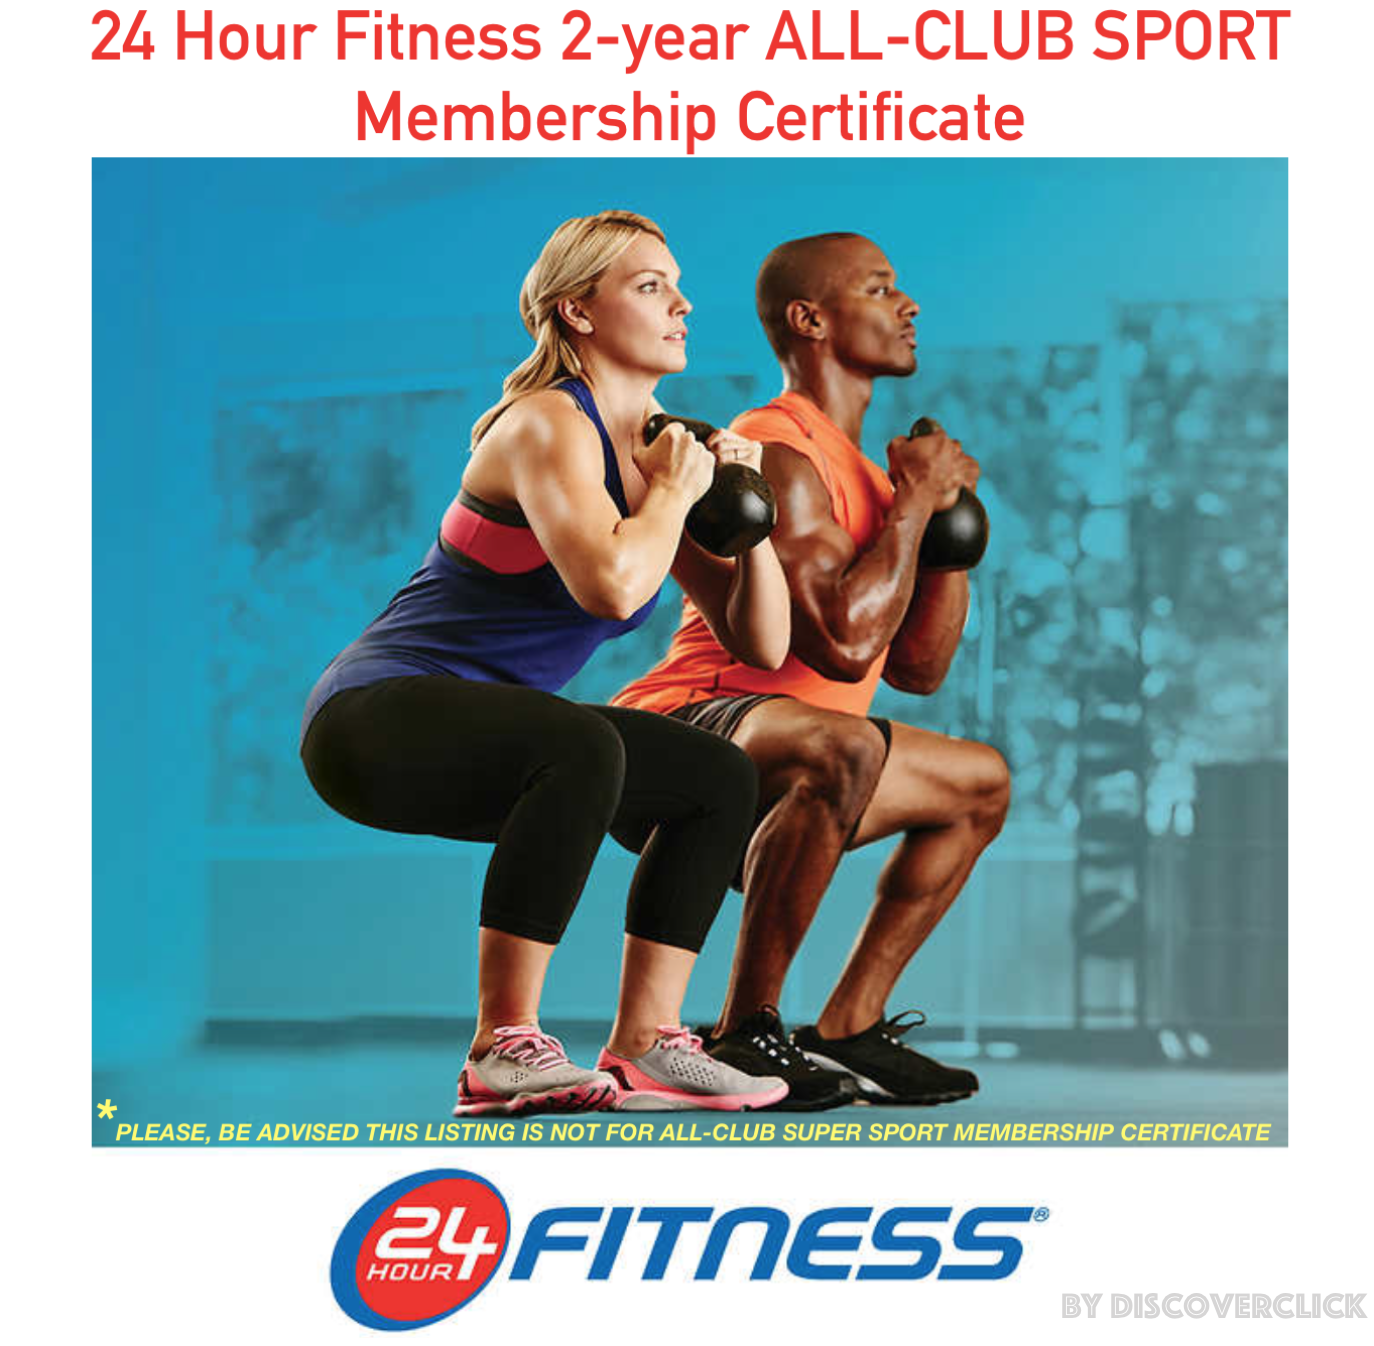 NEW 24 Hour Fitness 2-year 2-year 2-year ALL-CLUB SPORT Gym Membership 1 Certificate Print-Out cb9c66